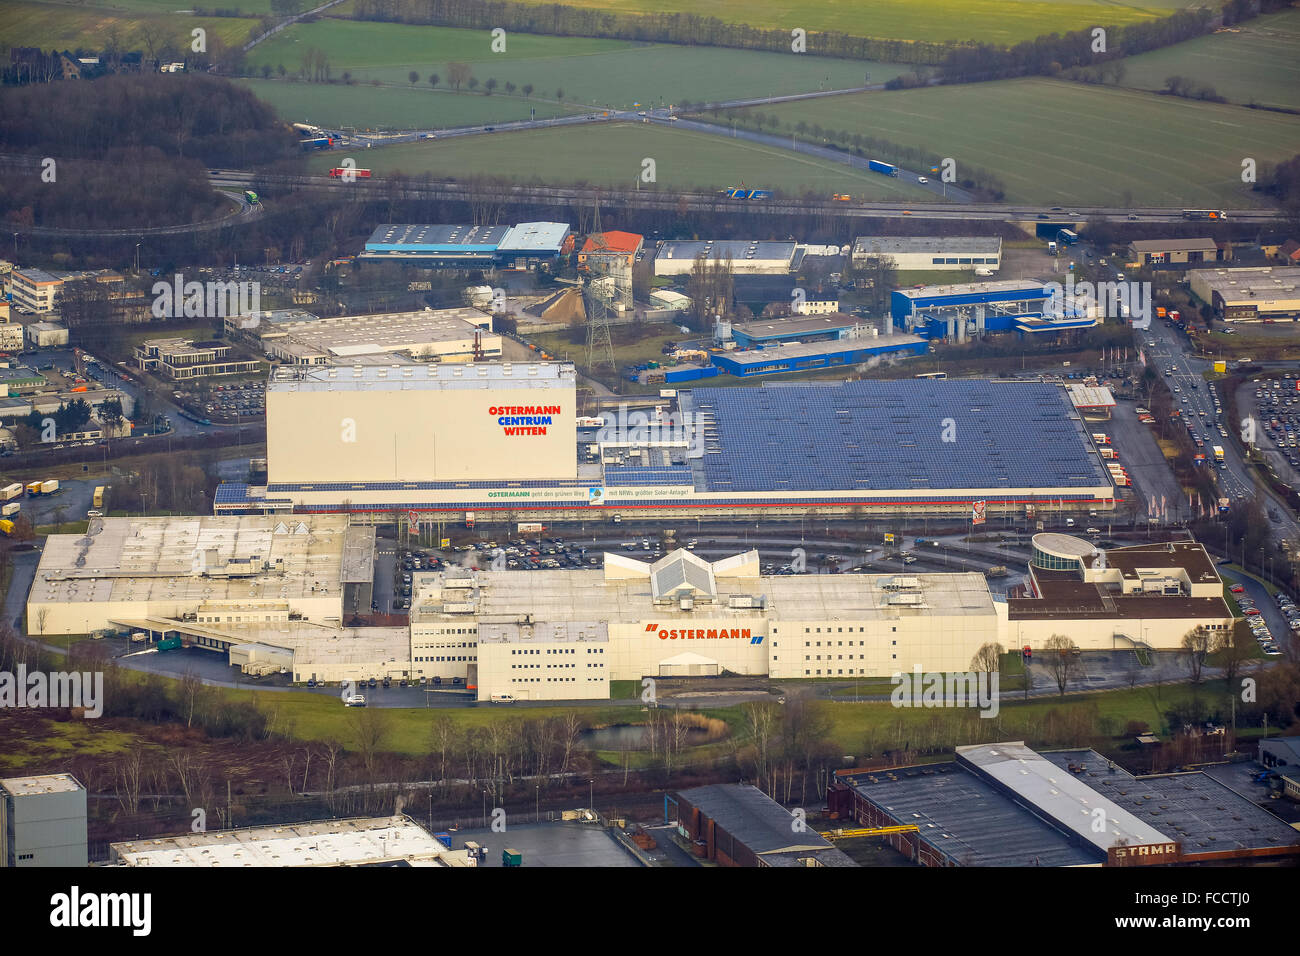 Aerial View Furniture Discounter Ostermann With The Largest Solar